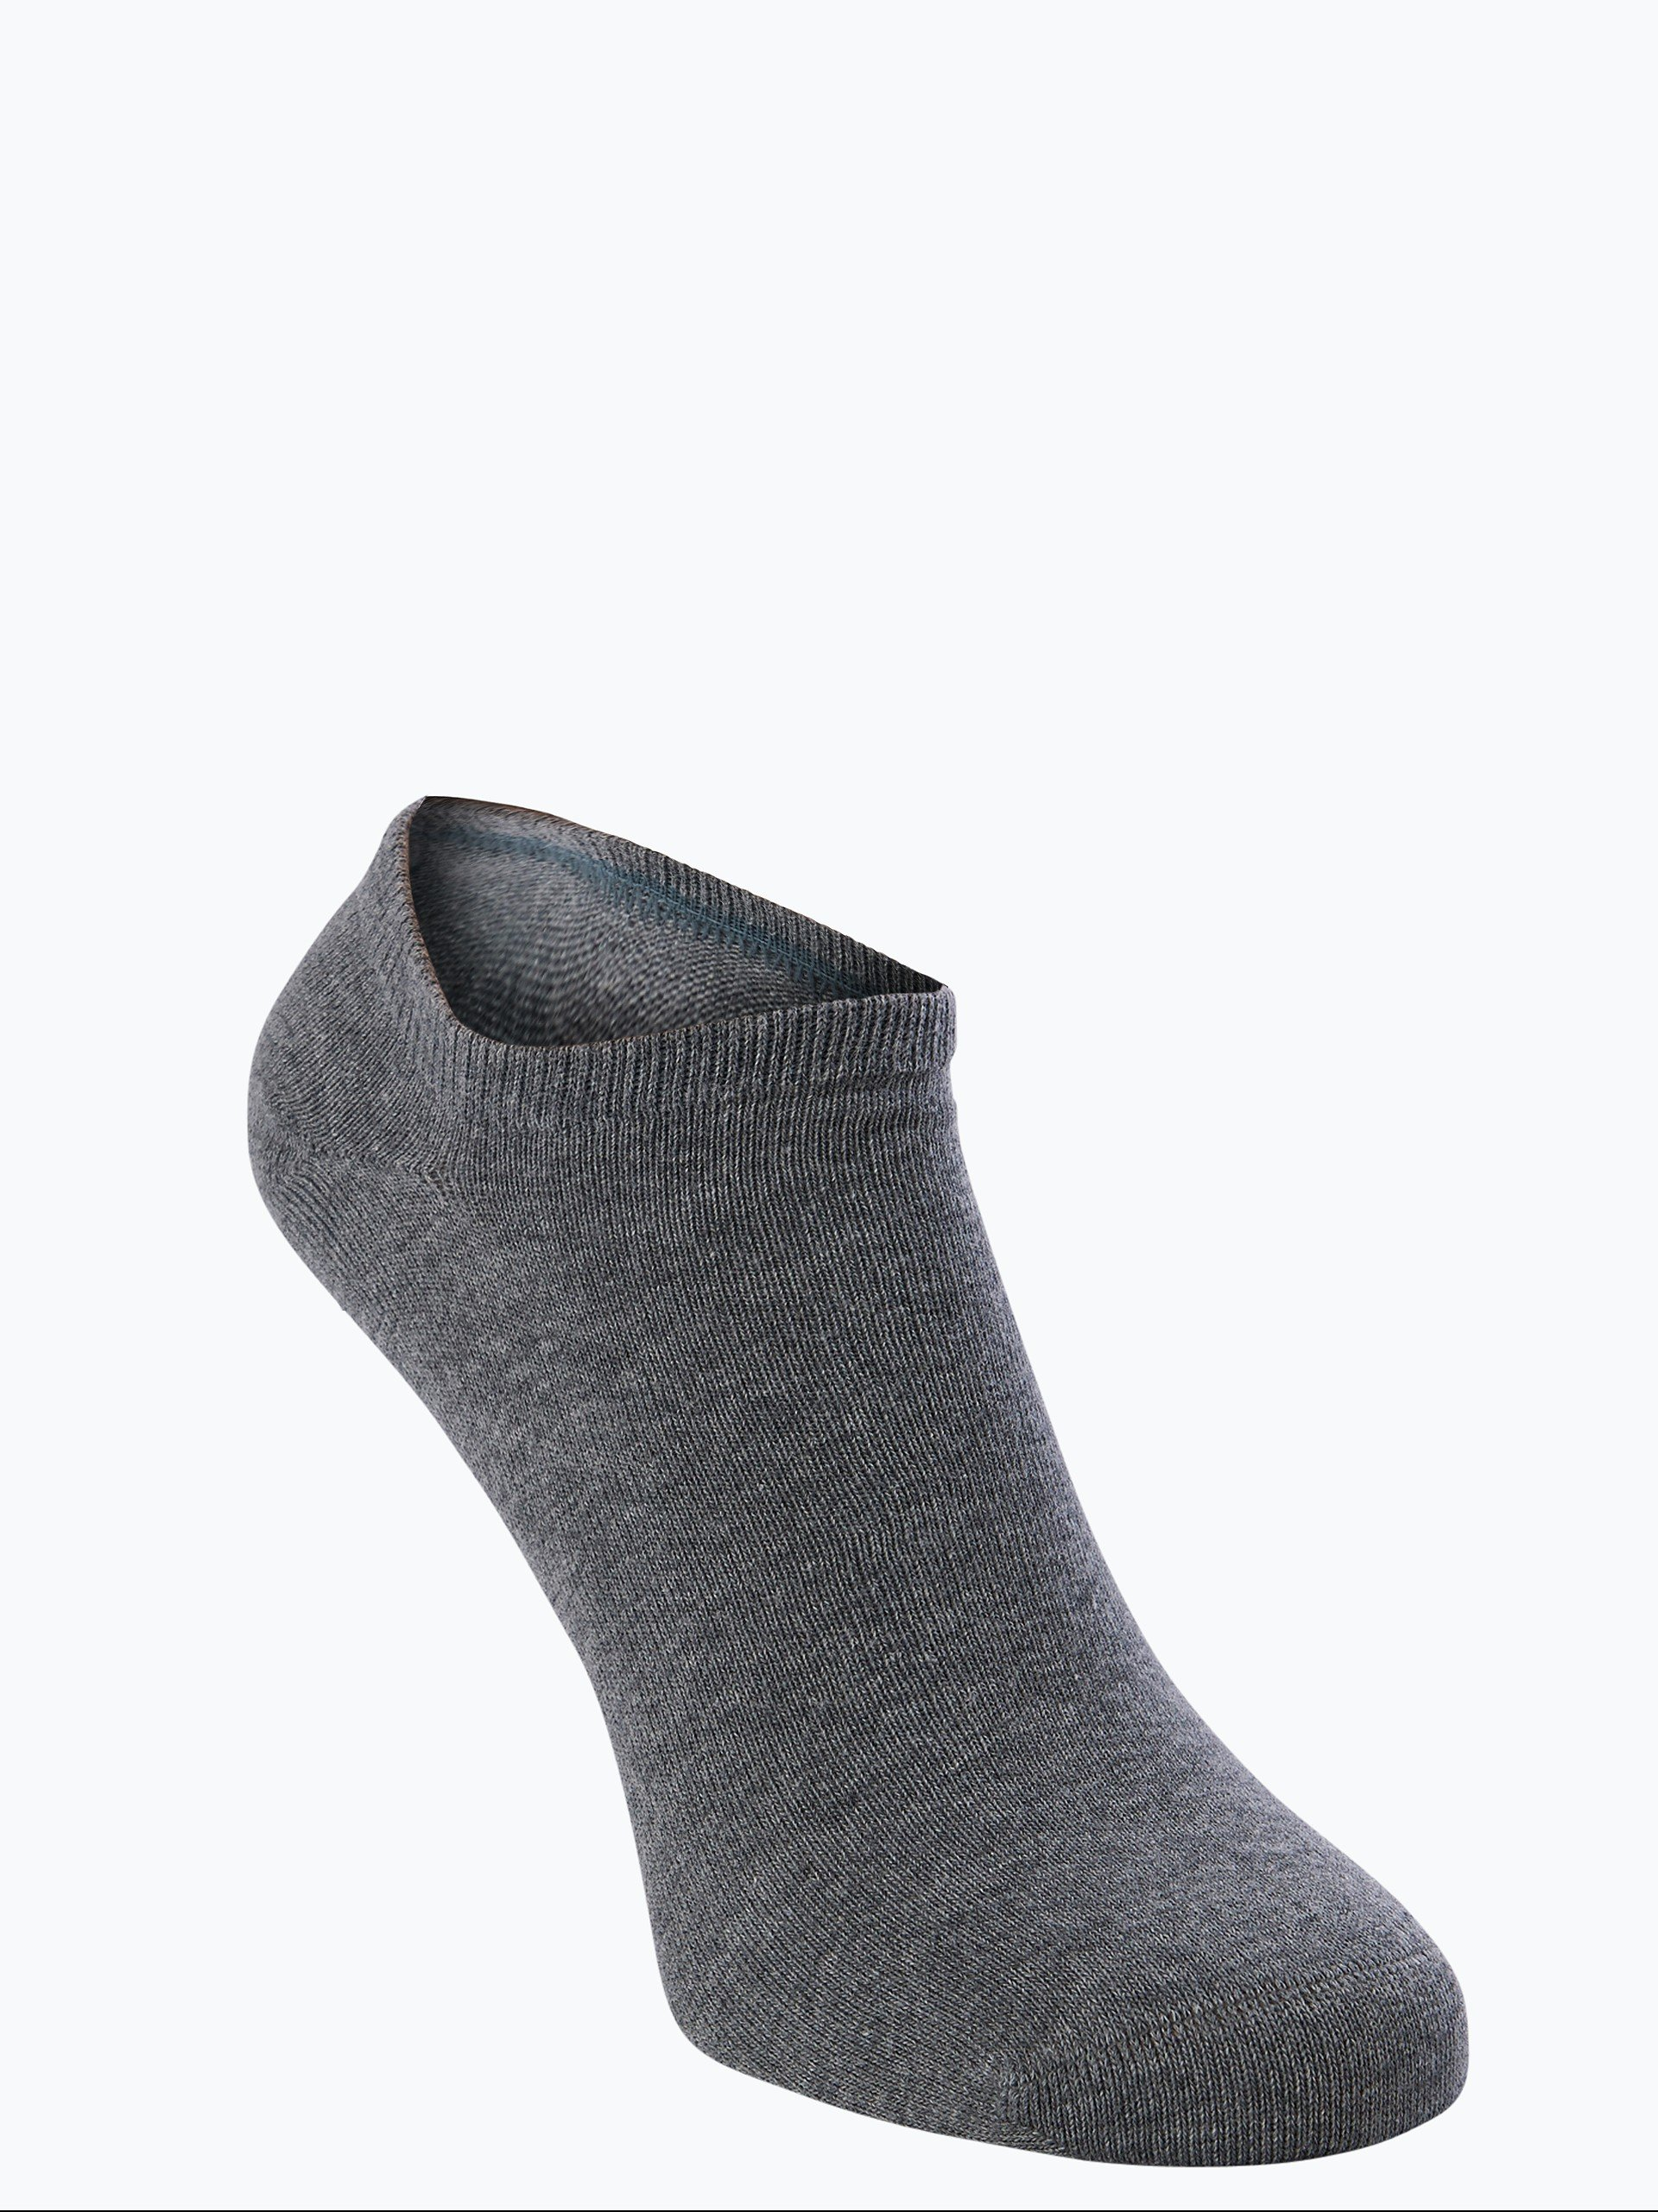 tommy hilfiger herren sneaker socken im 2er pack melange uni online kaufen peek und cloppenburg de. Black Bedroom Furniture Sets. Home Design Ideas